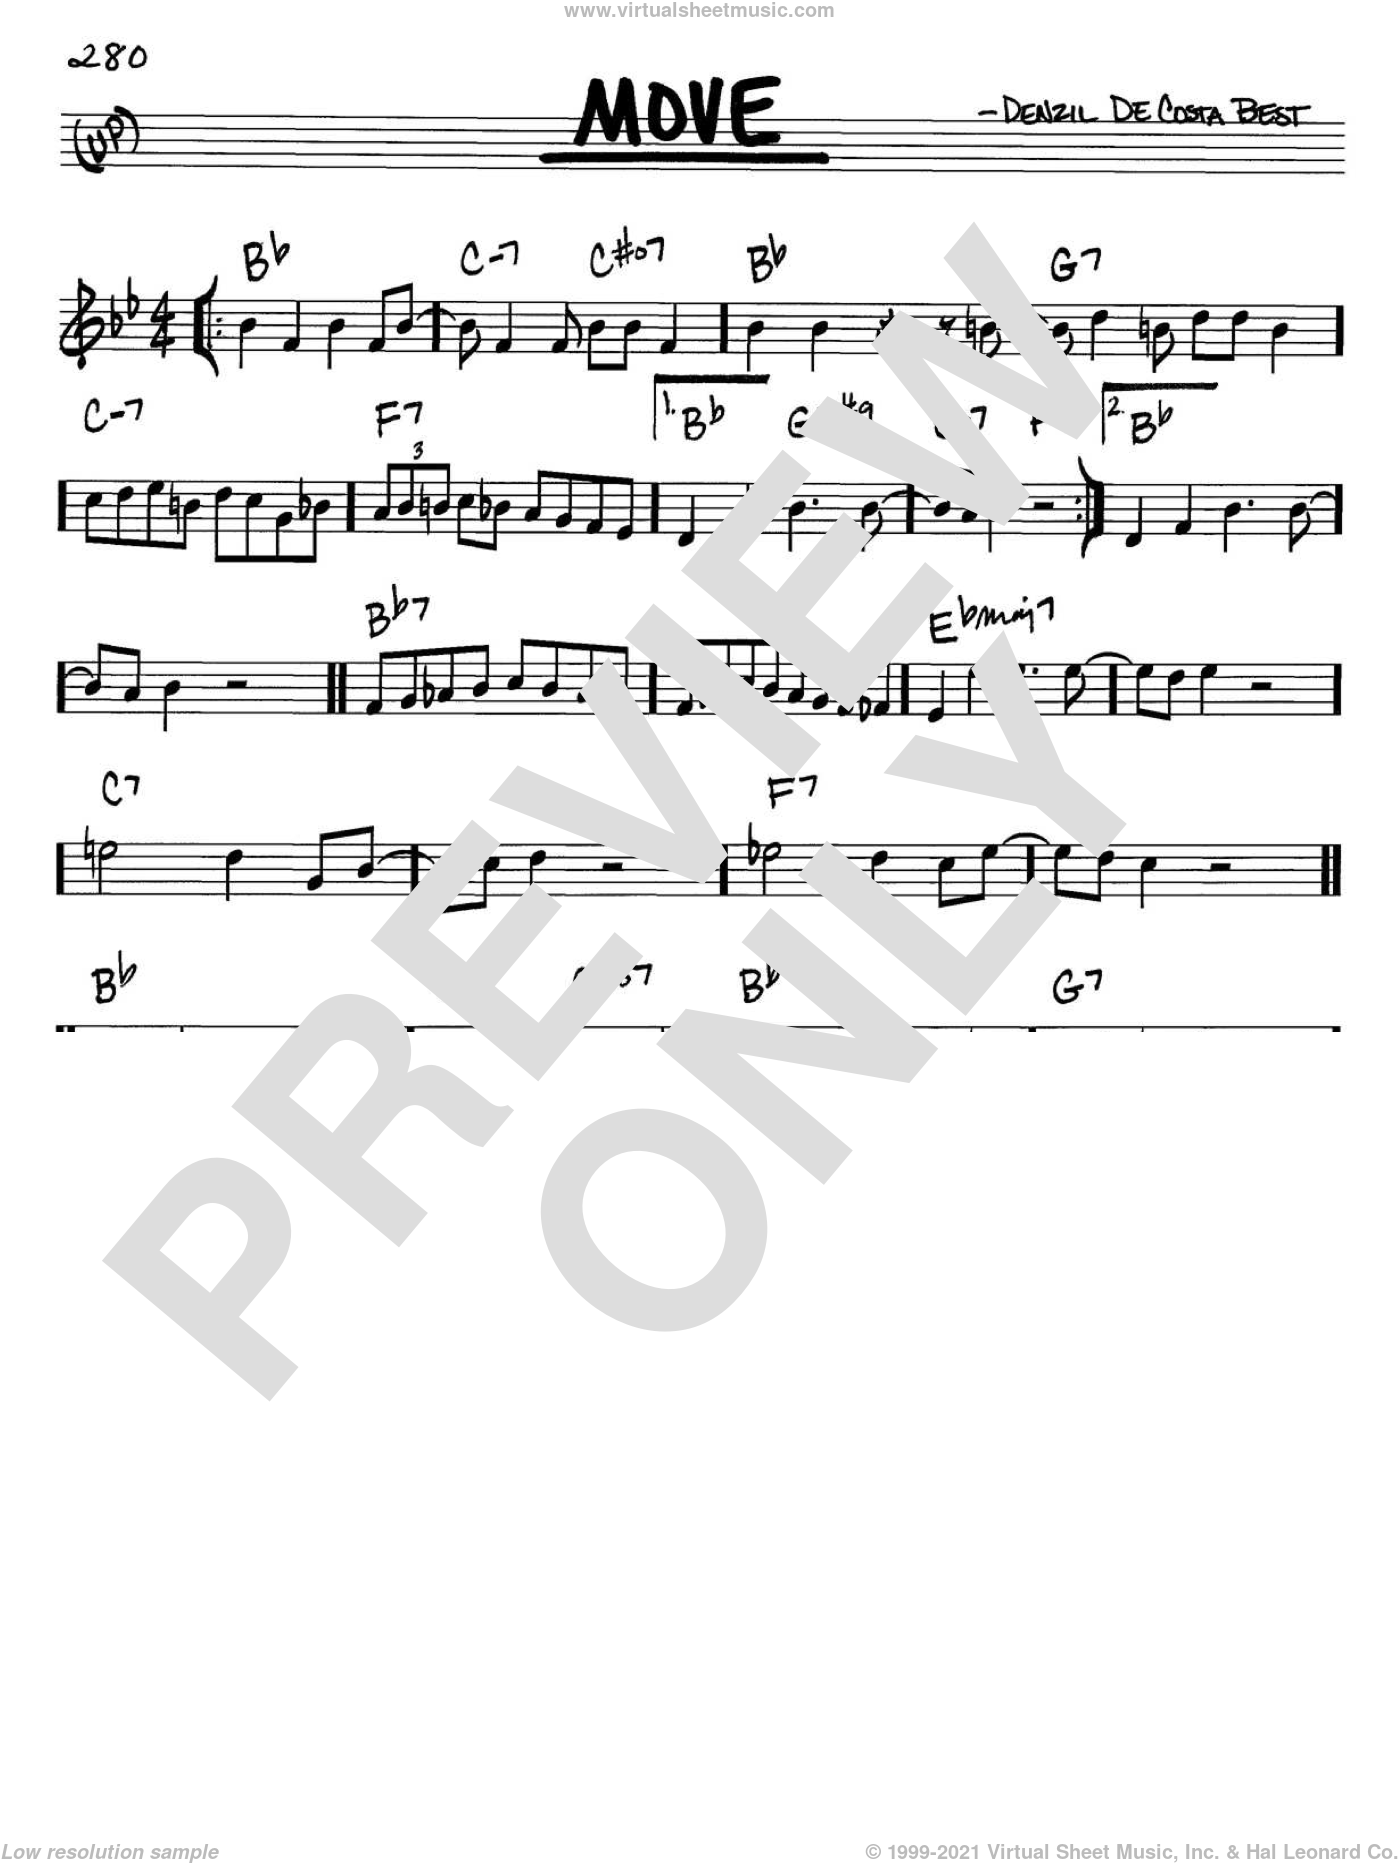 Move sheet music for voice and other instruments (in C) by Miles Davis and Denzil De Costa Best, intermediate skill level